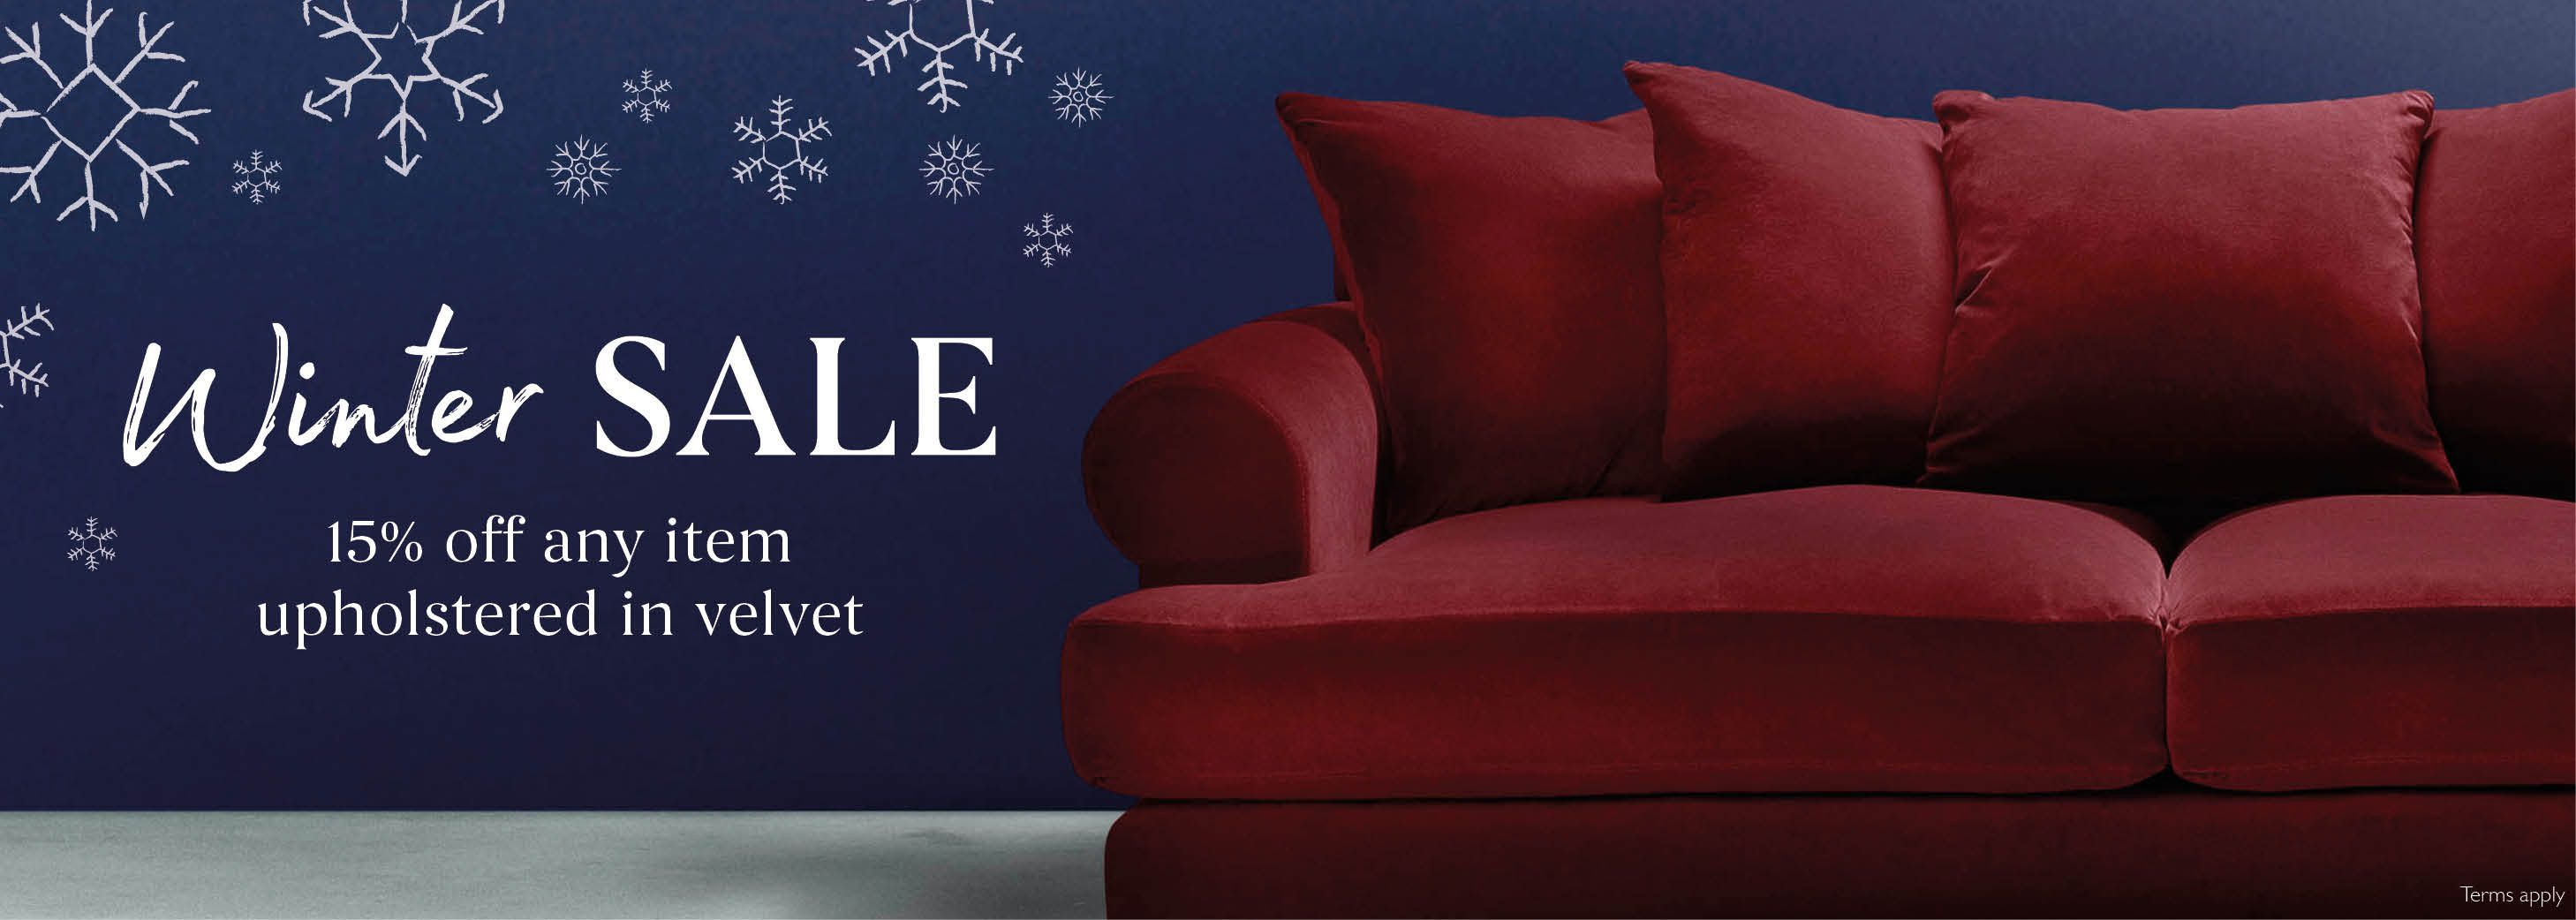 WinterSale-Category Banner-Velvet.jpg